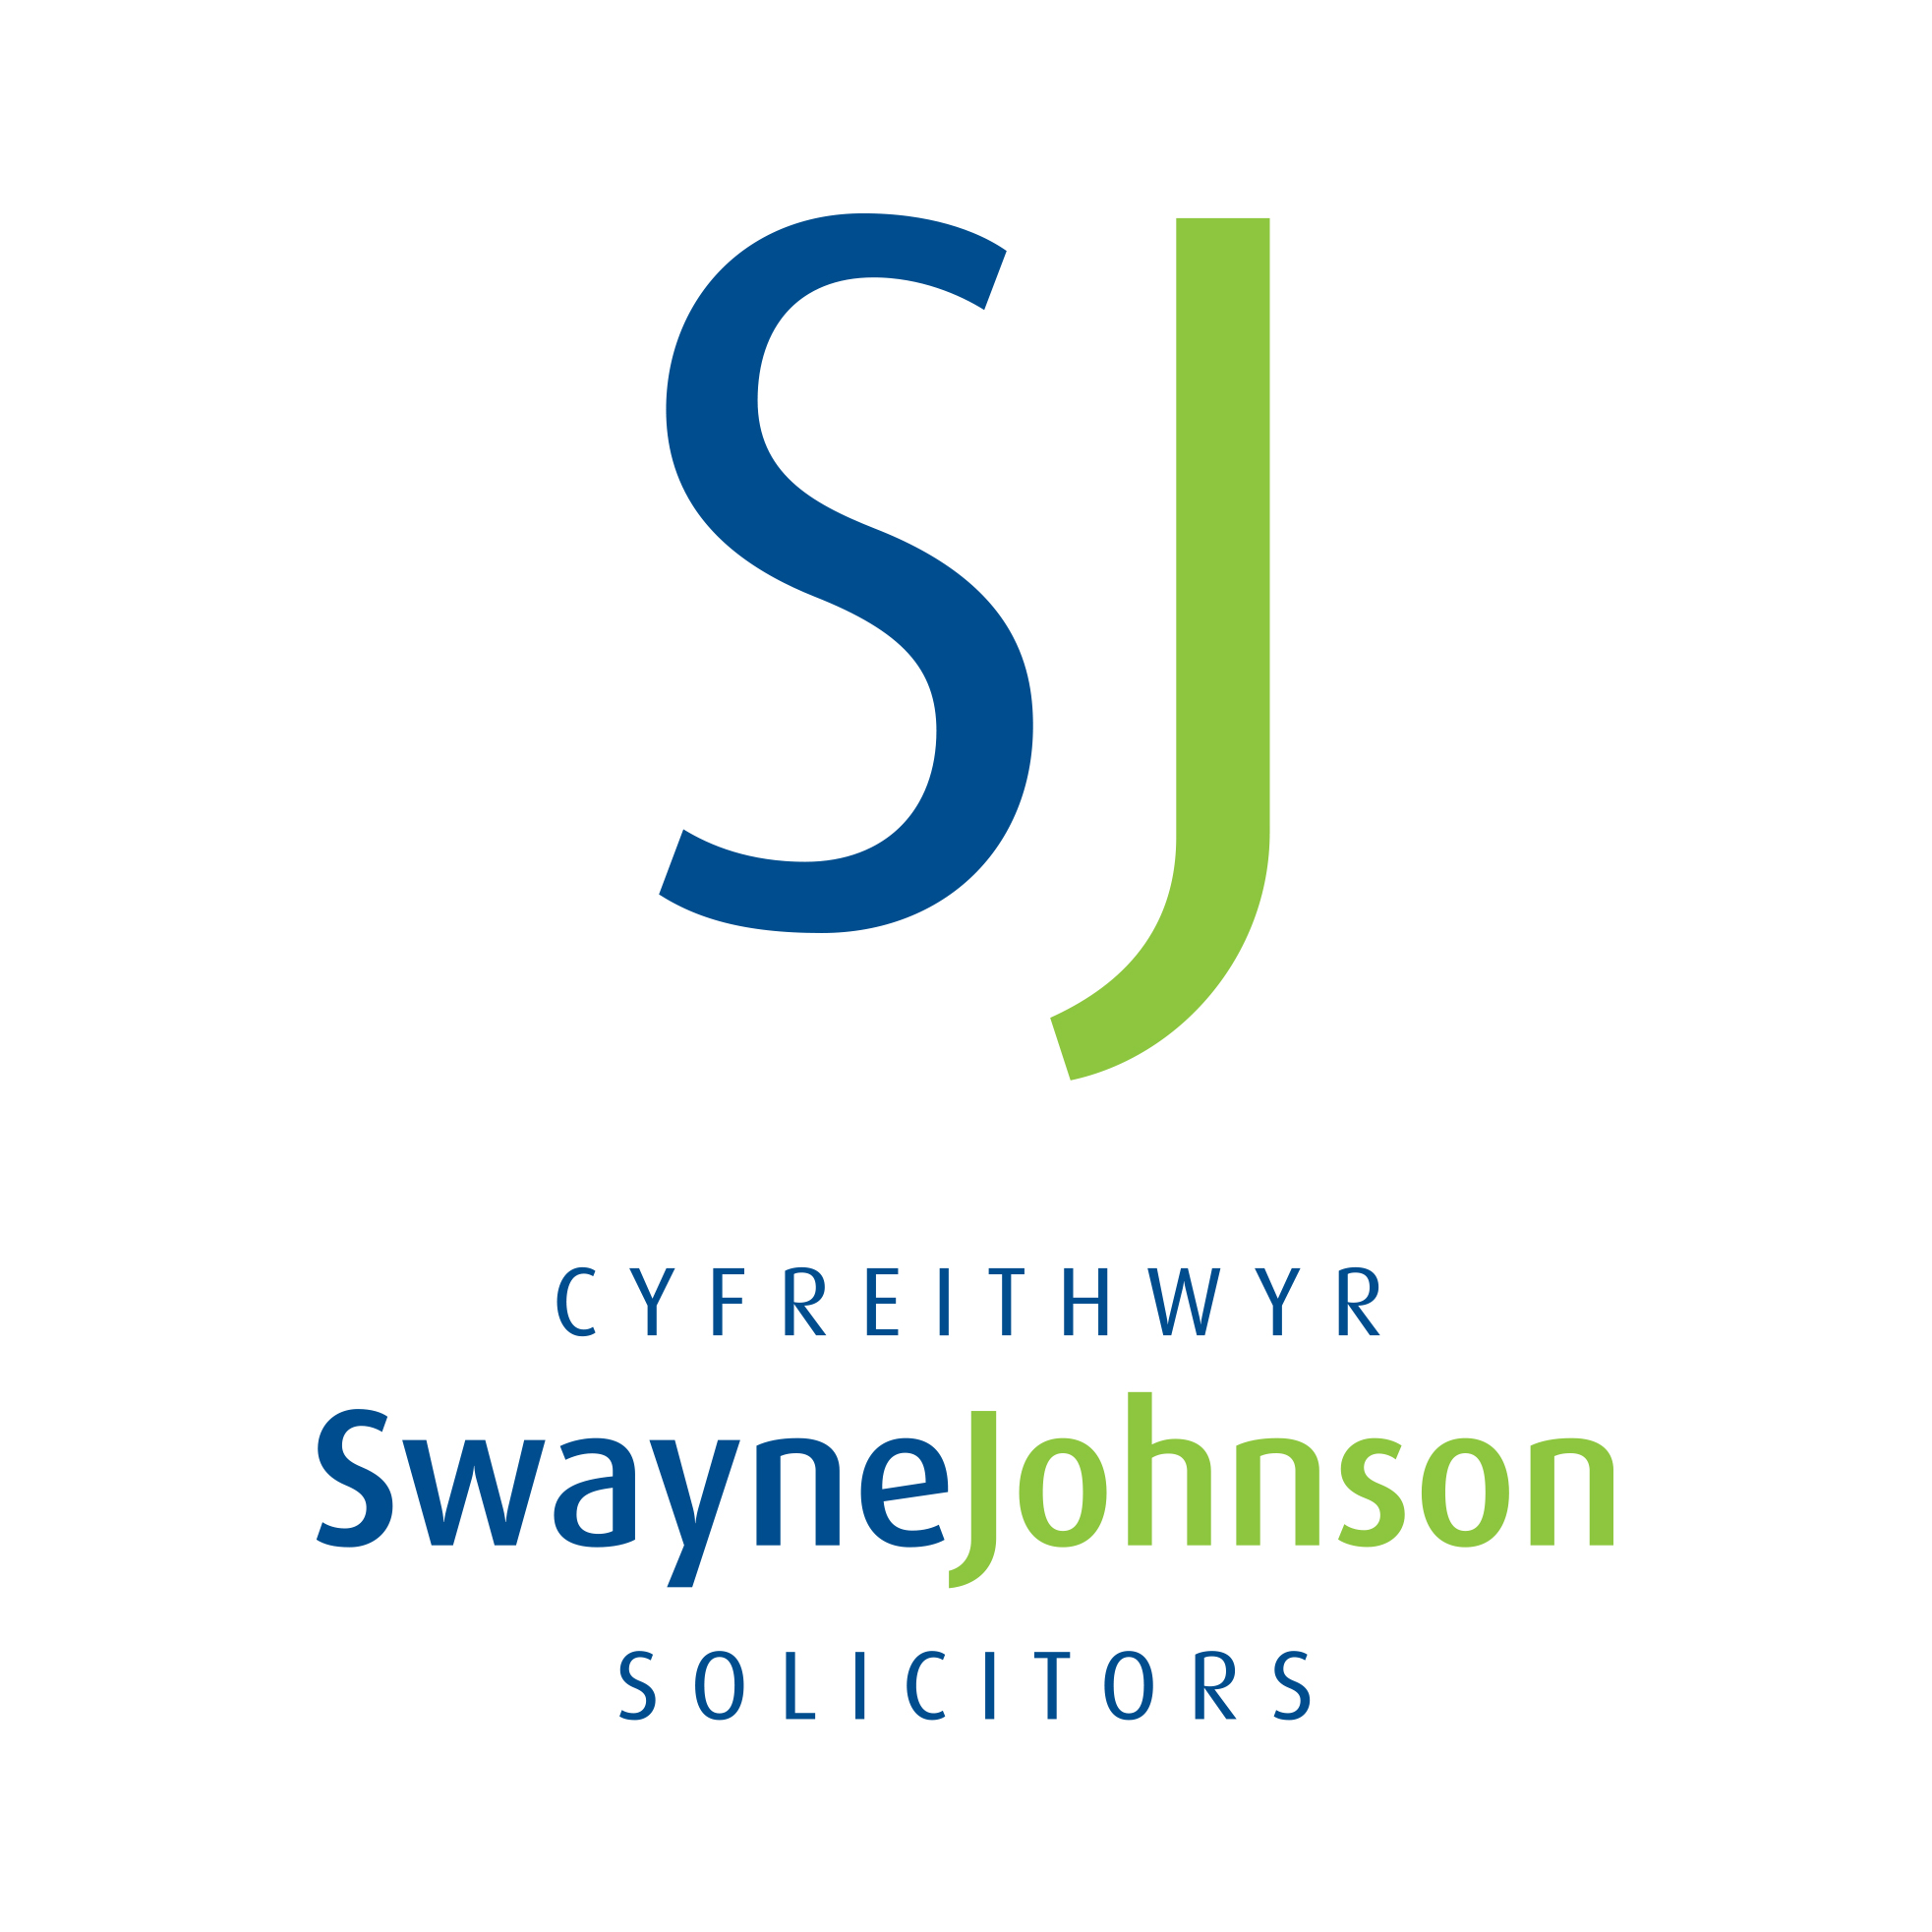 SJ Solicitors A4 centred.jpg